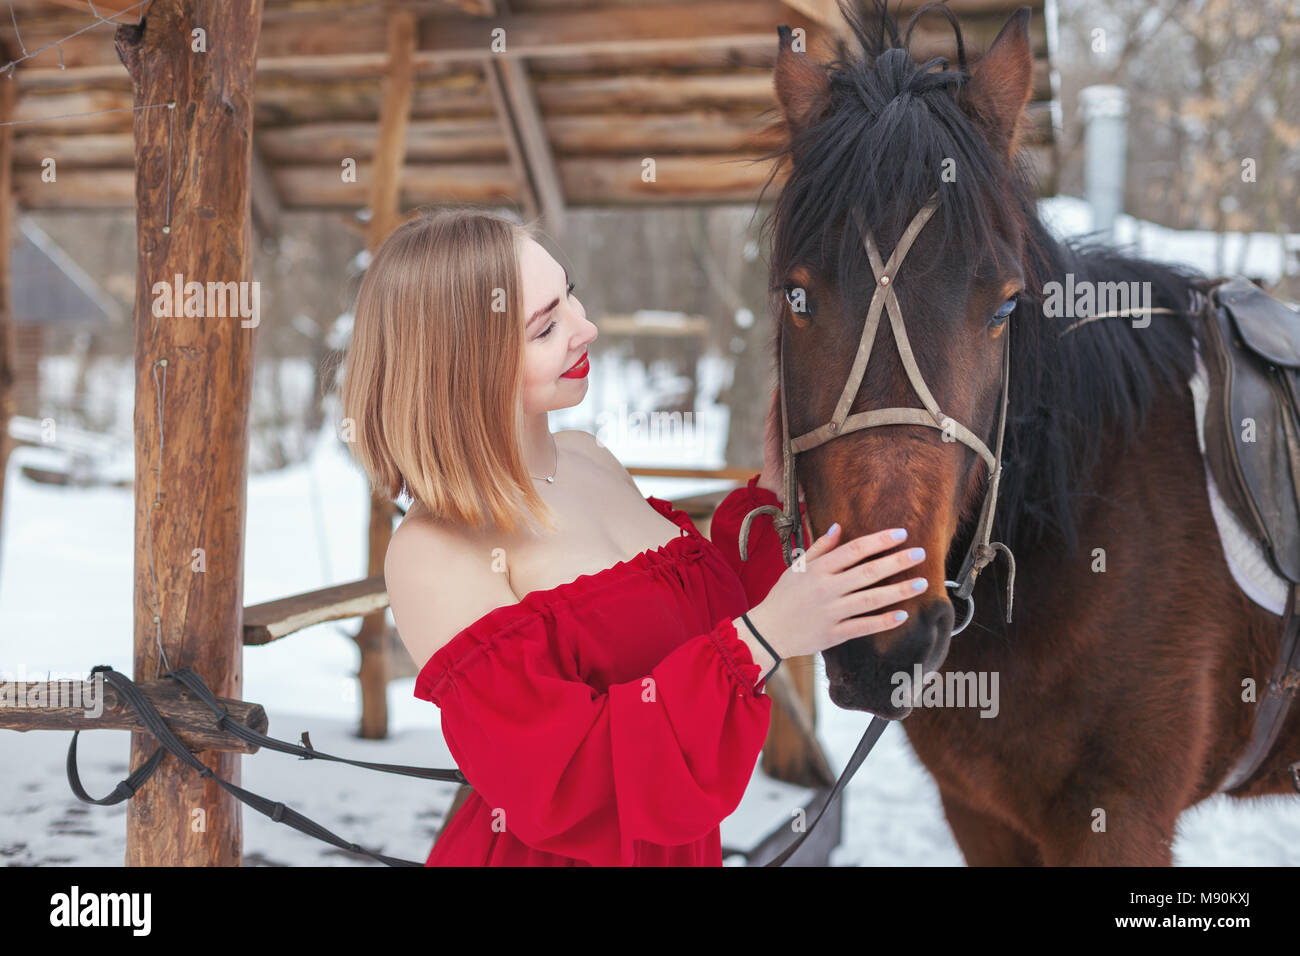 Beautiful Young Woman Standing Near The Stables With Horse Stock Photo Alamy